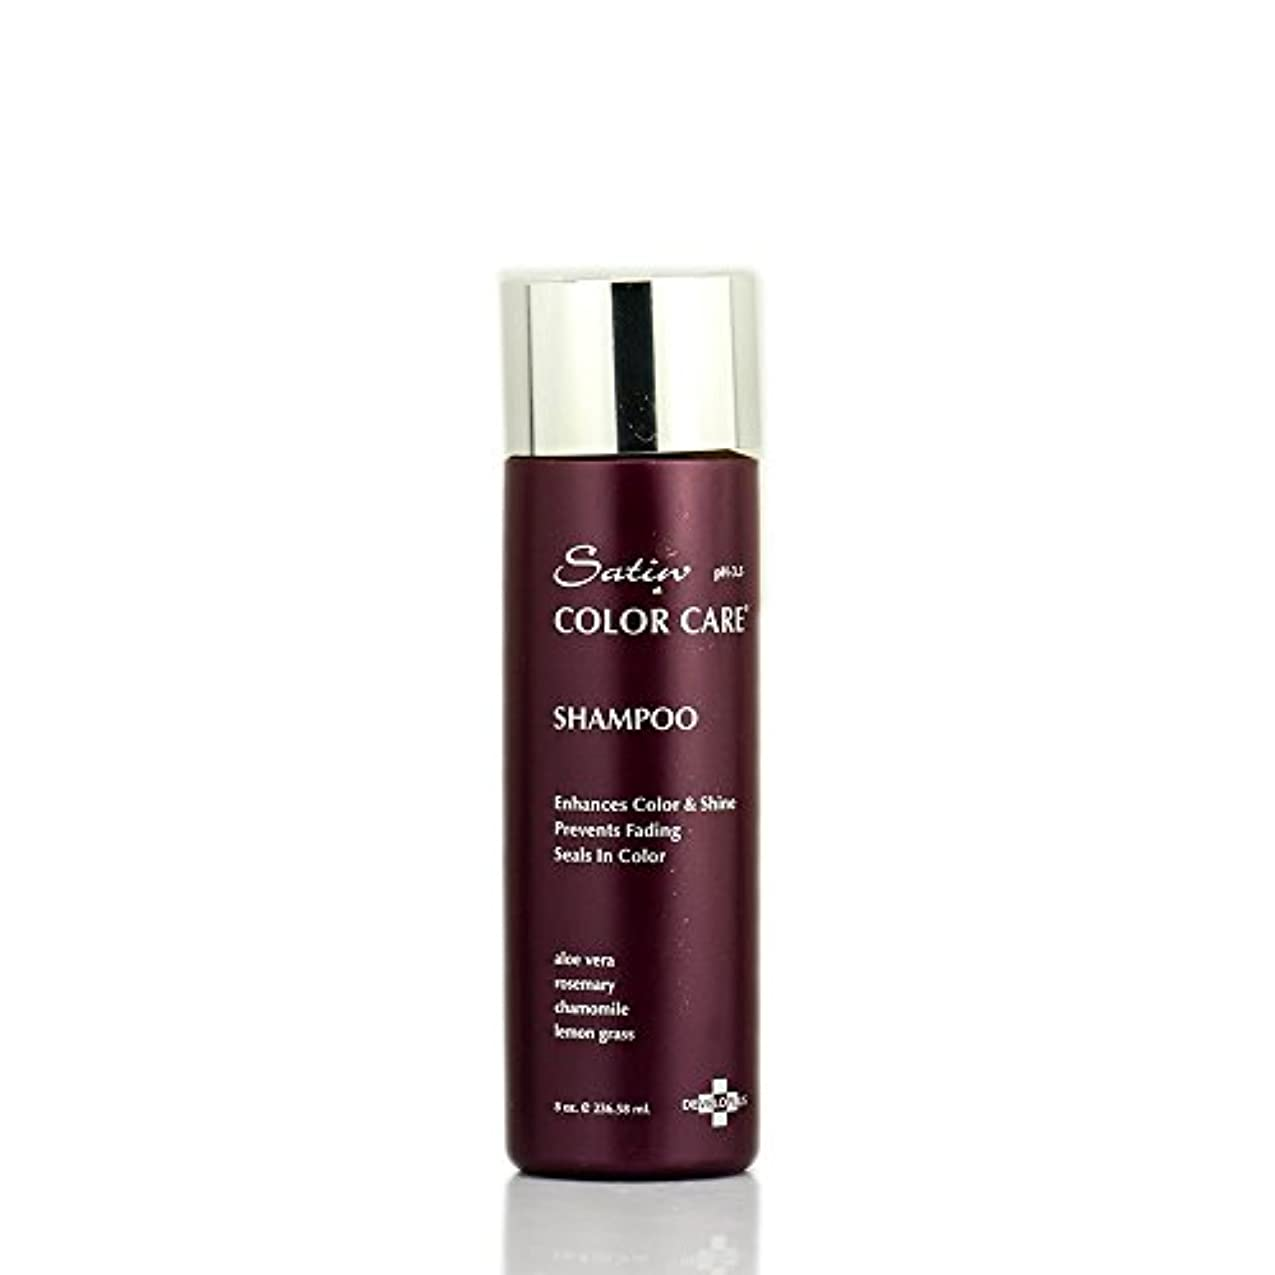 Developlus Satin Color Care Conditioner 6oz Tube by Developlus